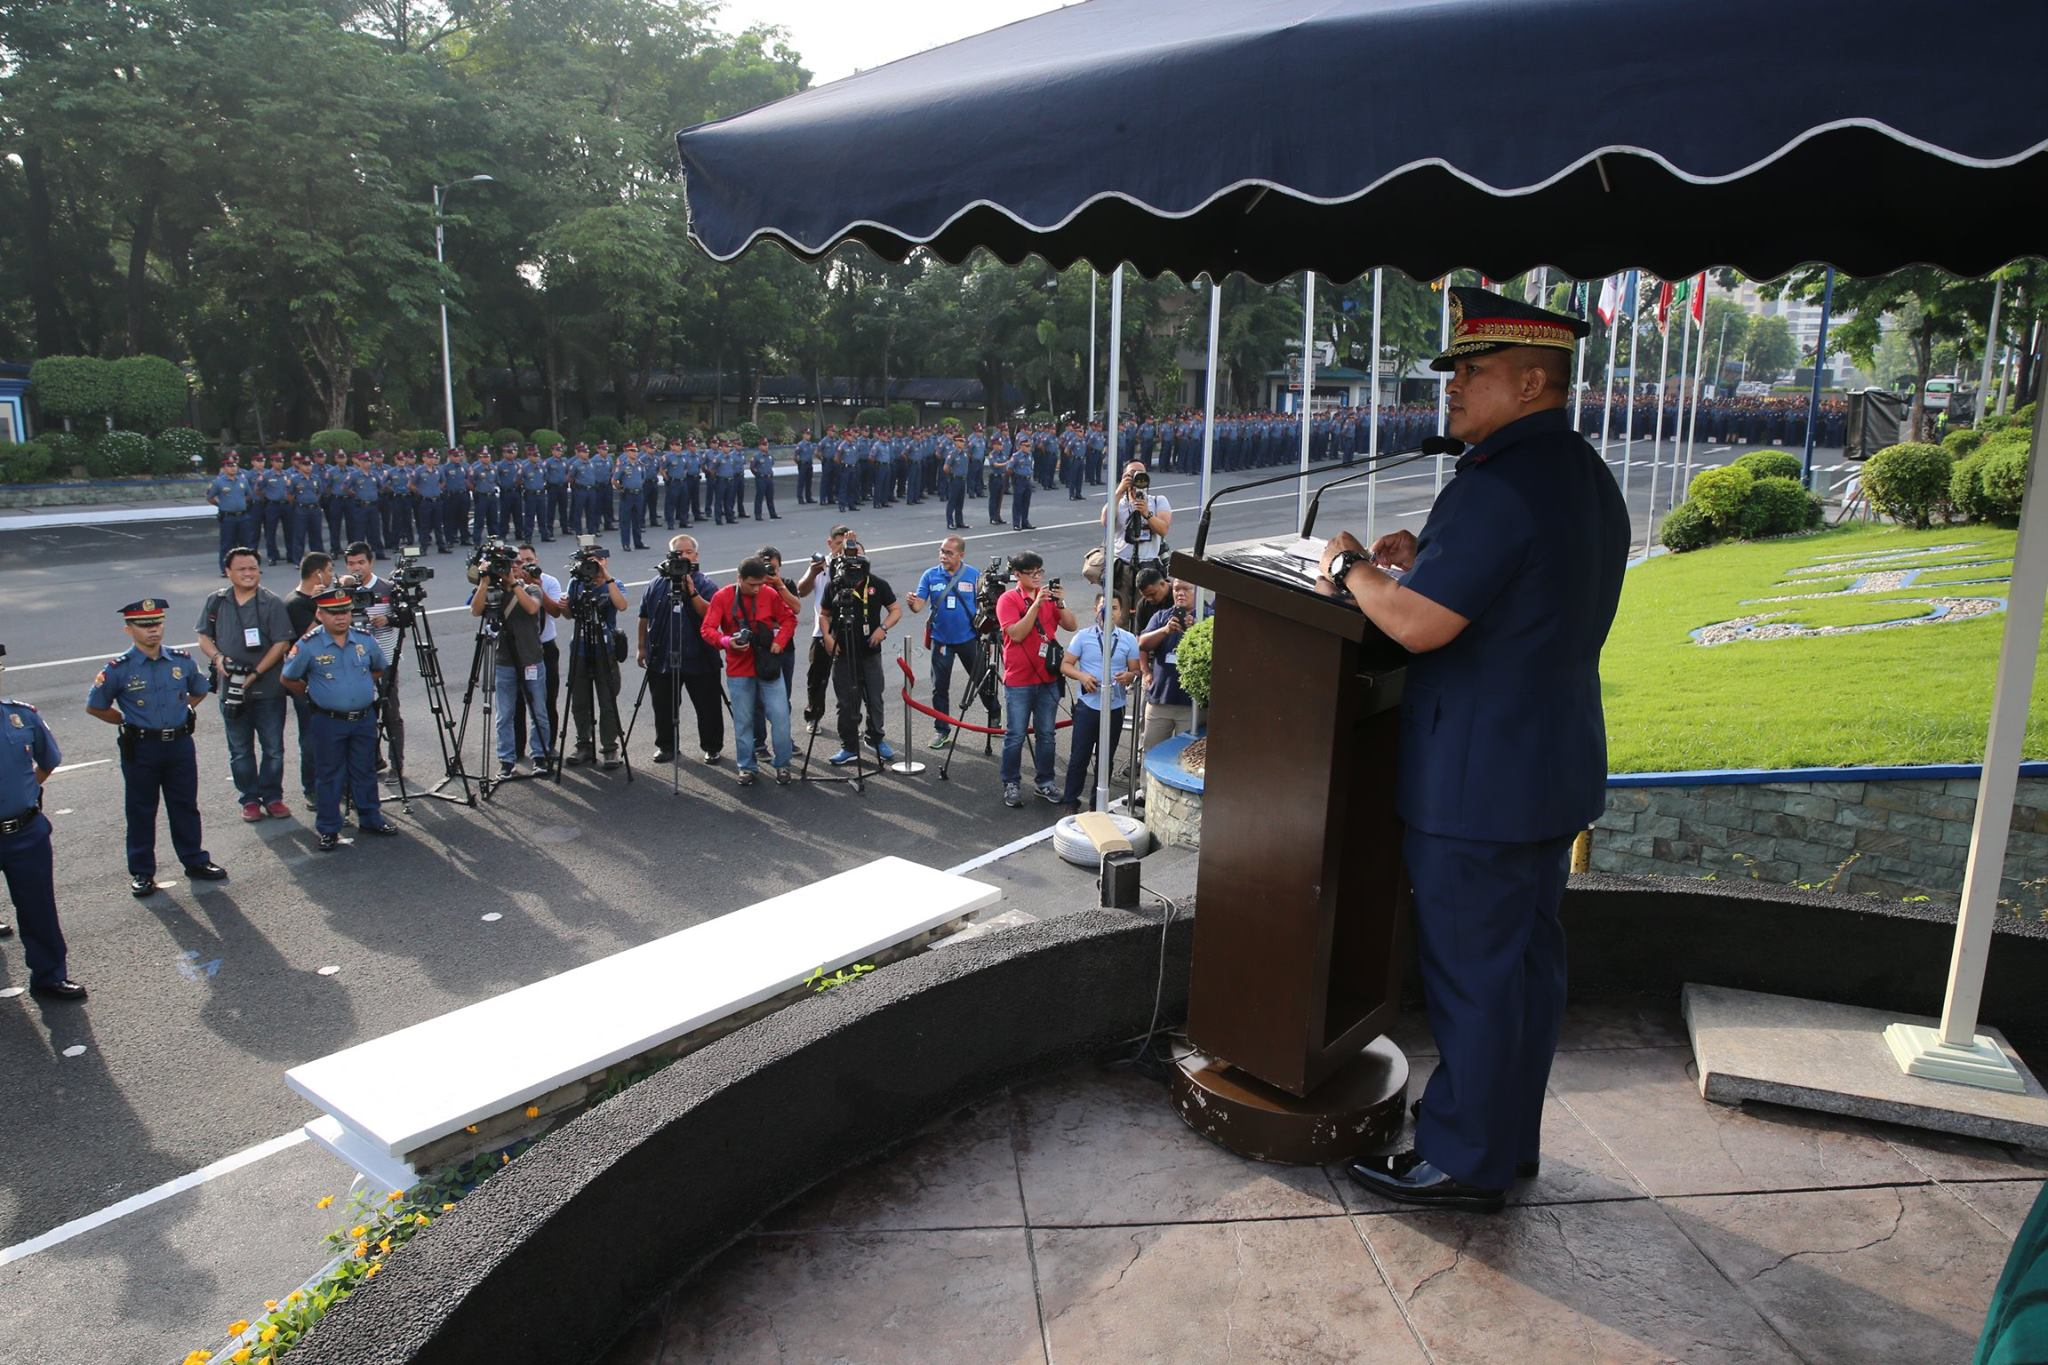 PNP REFORM. Director General Ronald dela Rosa addresses police during a flag-raising ceremony at Camp Crame. File photo from PNP PIO